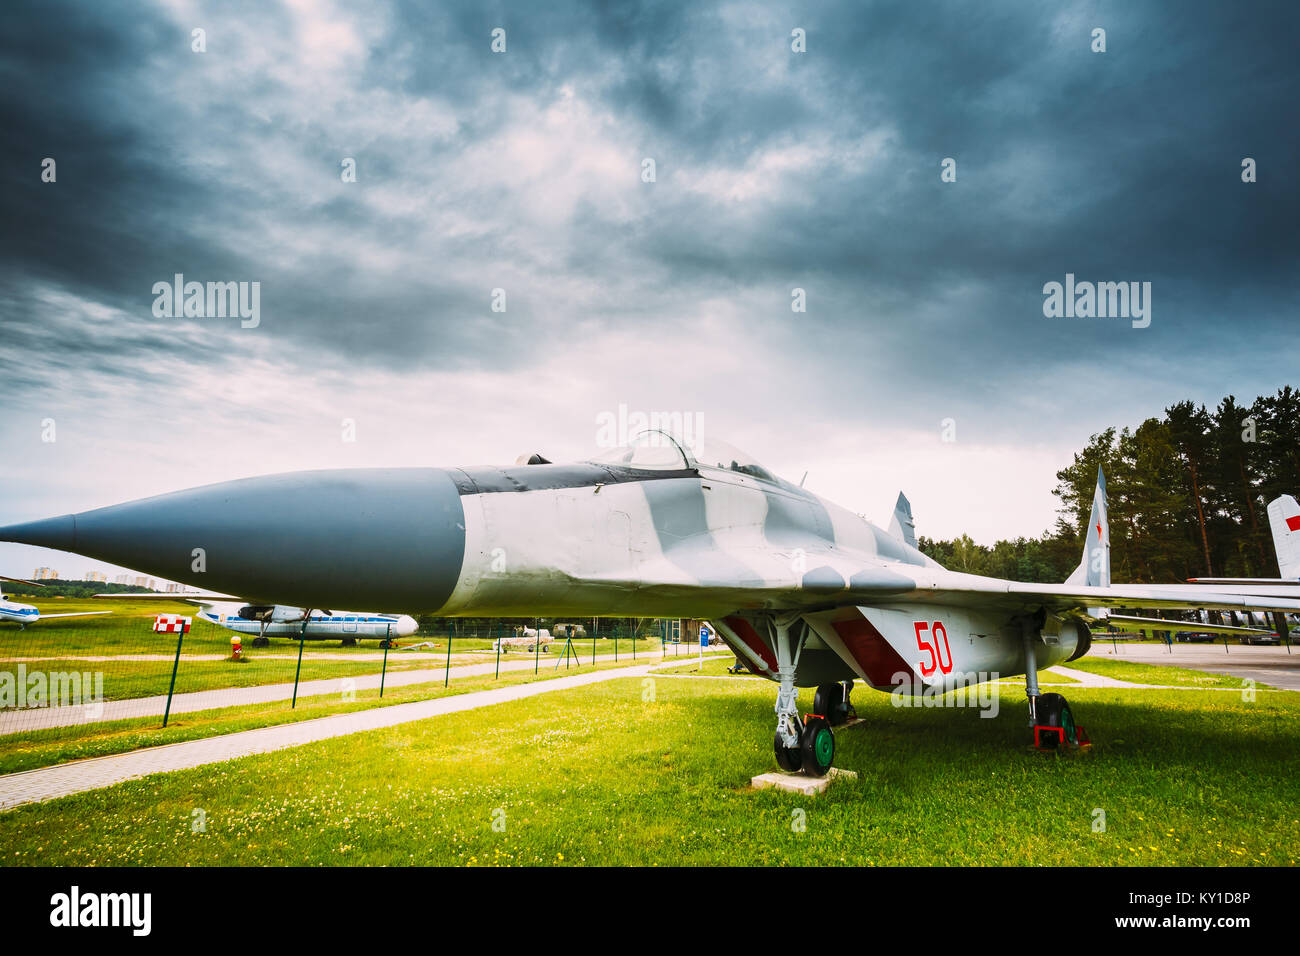 Russian Soviet Military Plane Aircraft multipurpose frontline fighter Stands In Grass At Aerodrome. Stock Photo